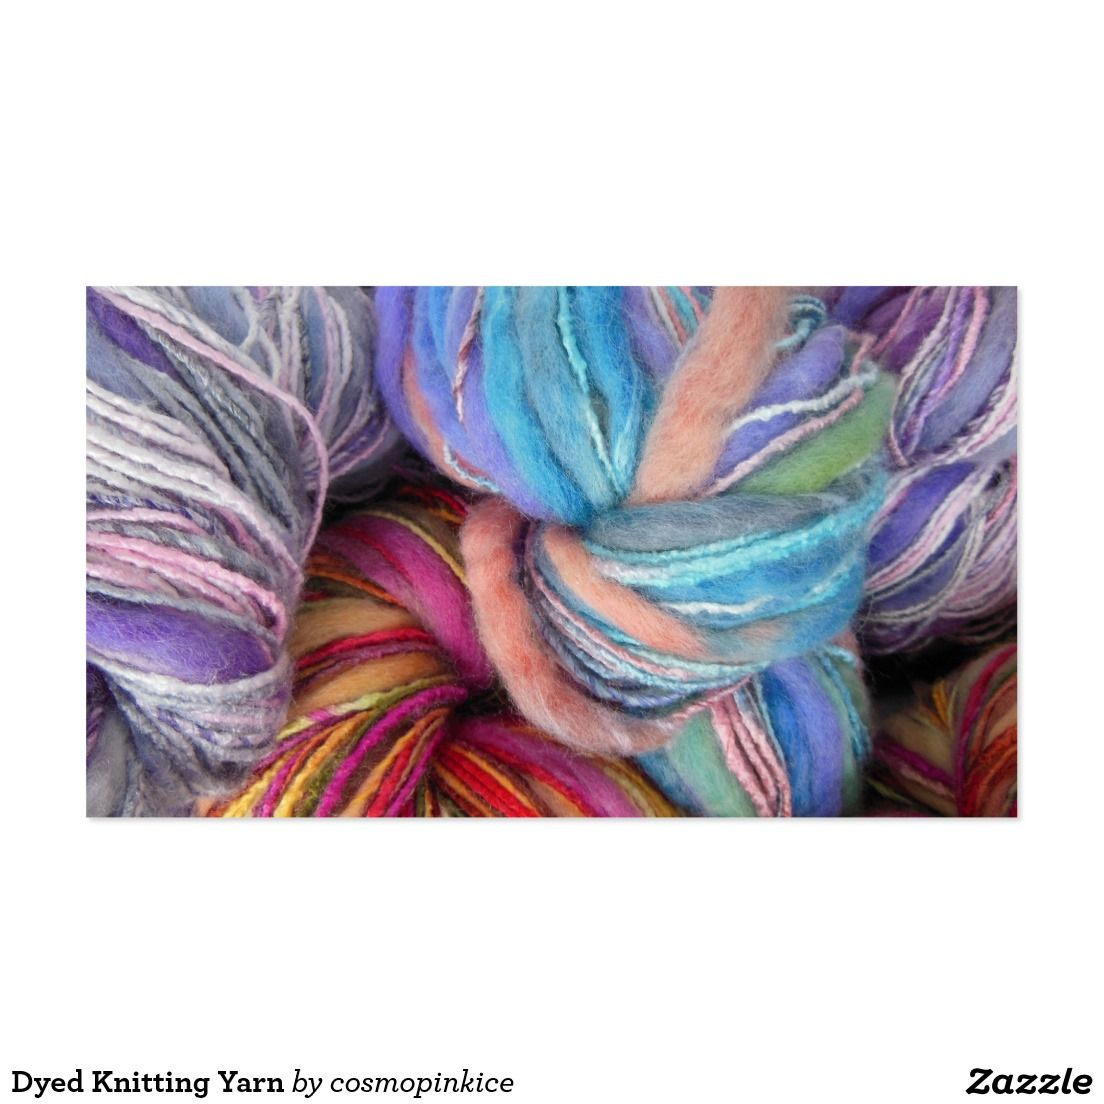 Dyed knitting yarn business card yarns easy knitting and business dyed knitting yarn business card magicingreecefo Image collections